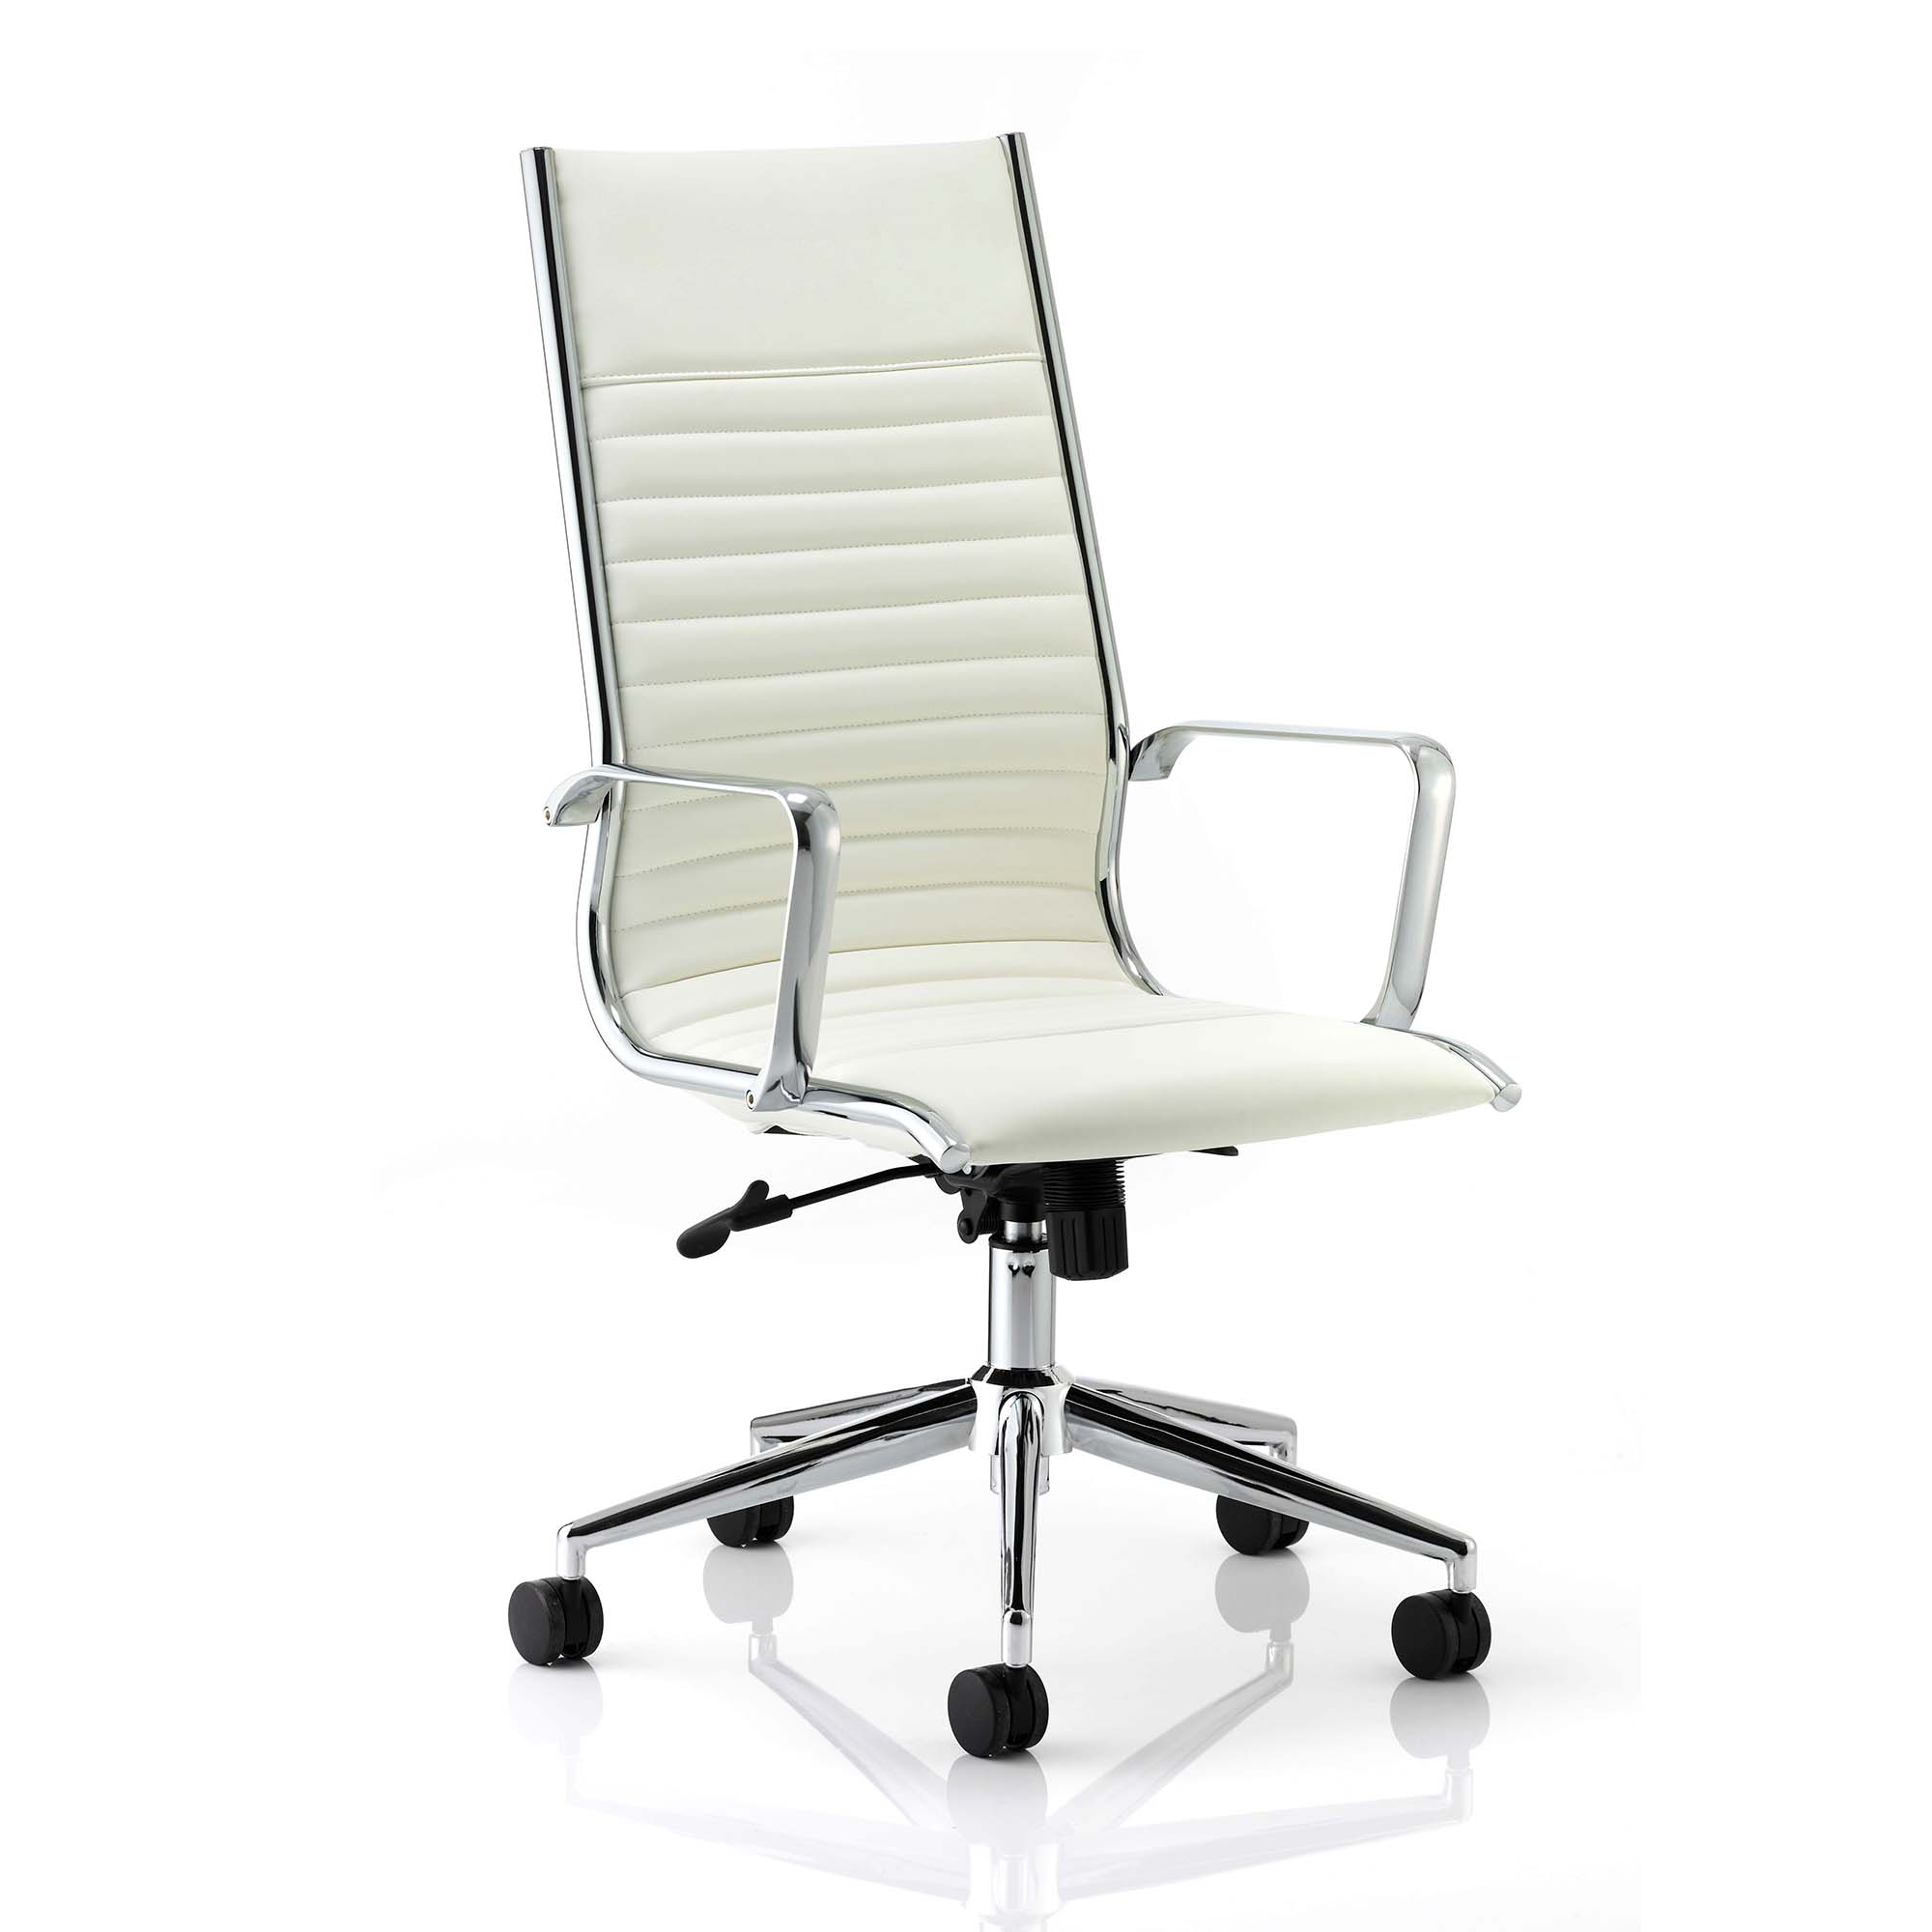 Executive seating Sonix Ritz Executive High Back Chair With Arms Bonded Leather Ivory Ref EX000058